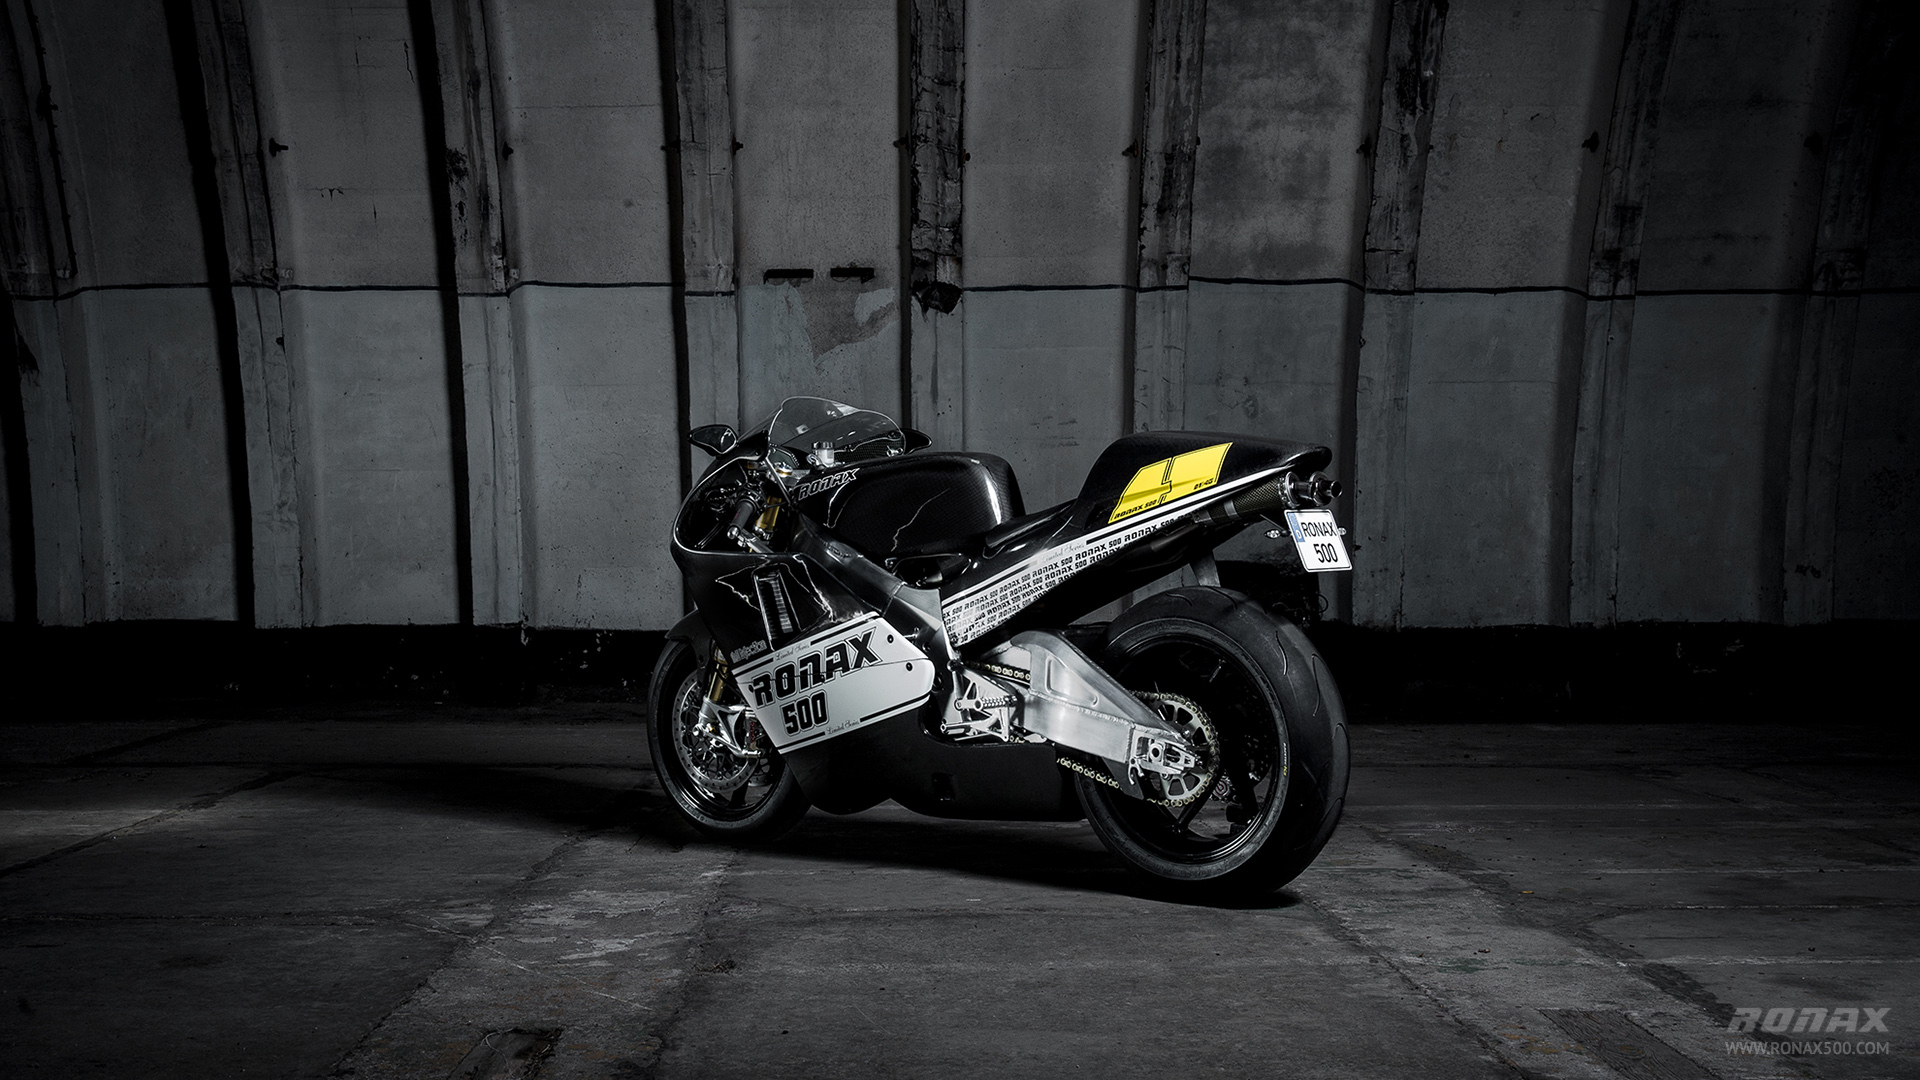 The £100,000 GP bike for the road